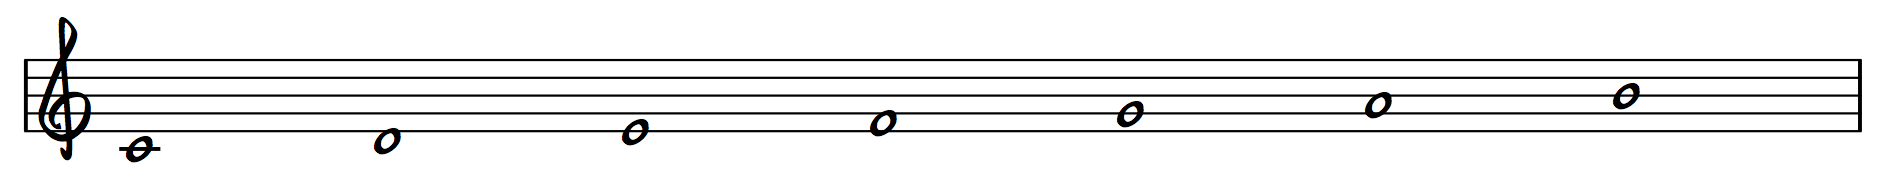 1 - C Major Scale